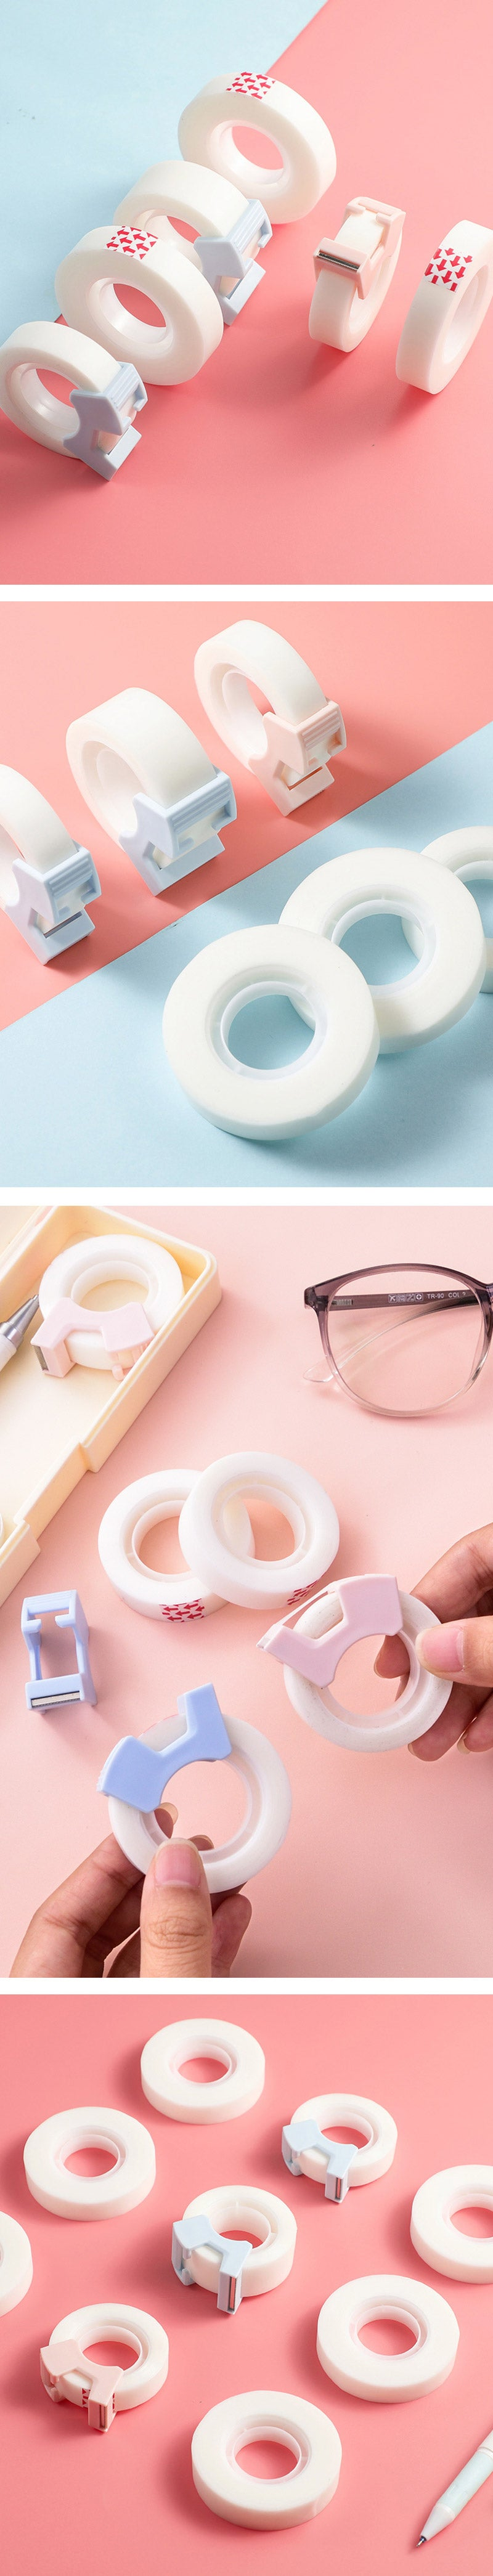 Invisible Matte Adhesive Tape with Dispenser Bundle - Detail